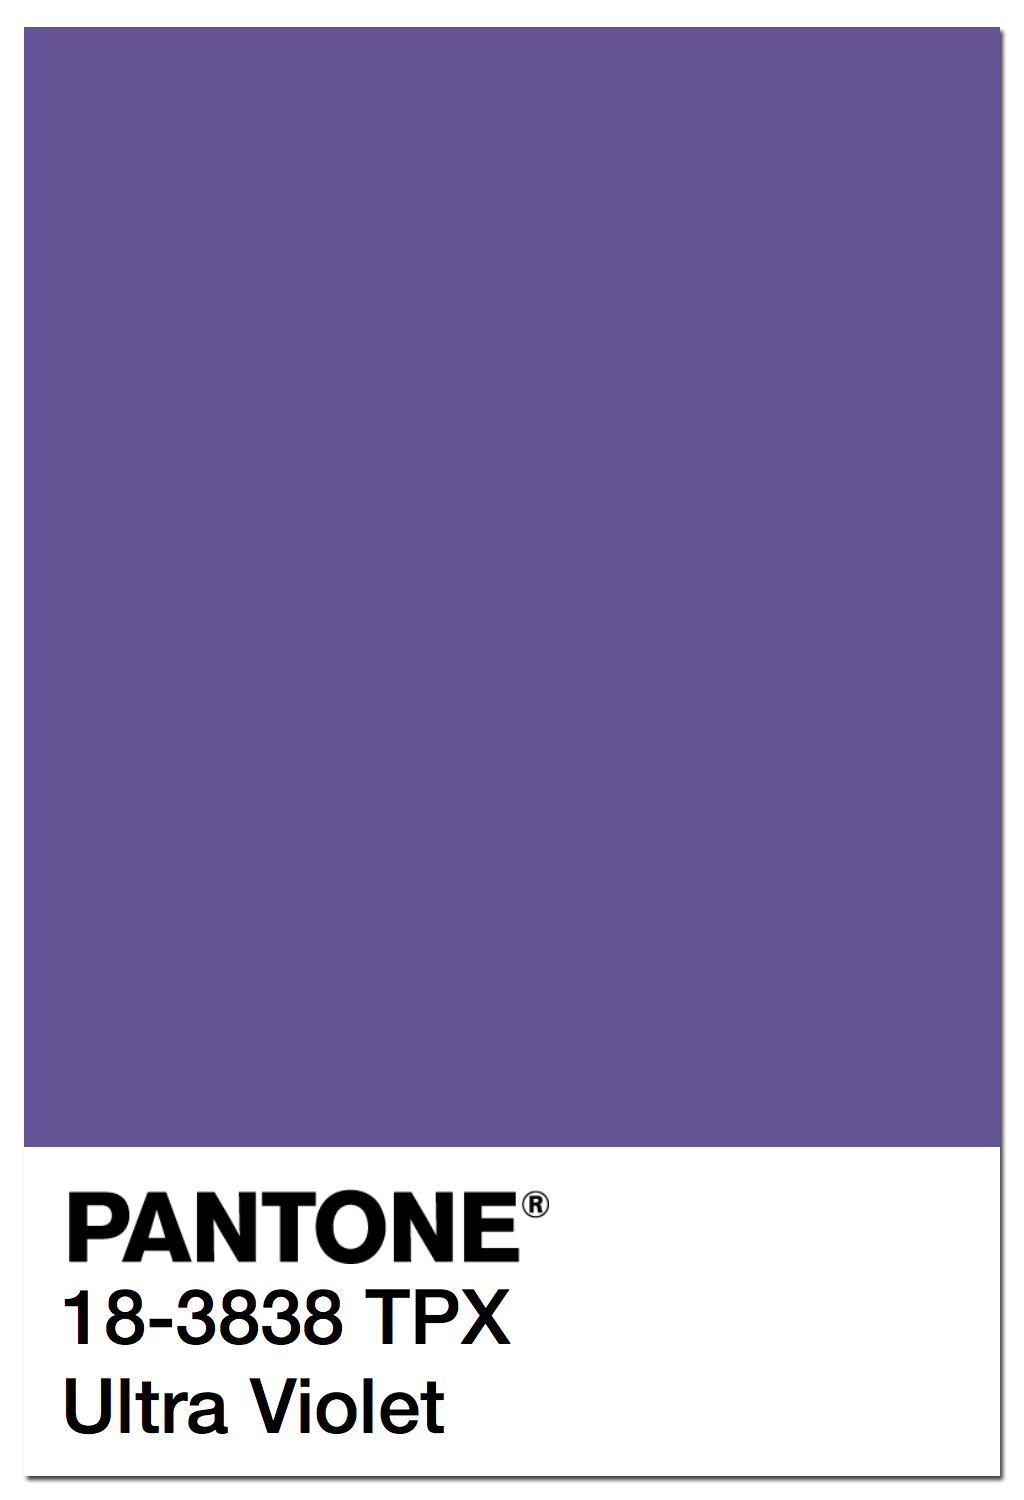 Ultra Violet Pantone Pantone Color Of The Year 2018 Pantone 18 3838 Ultra